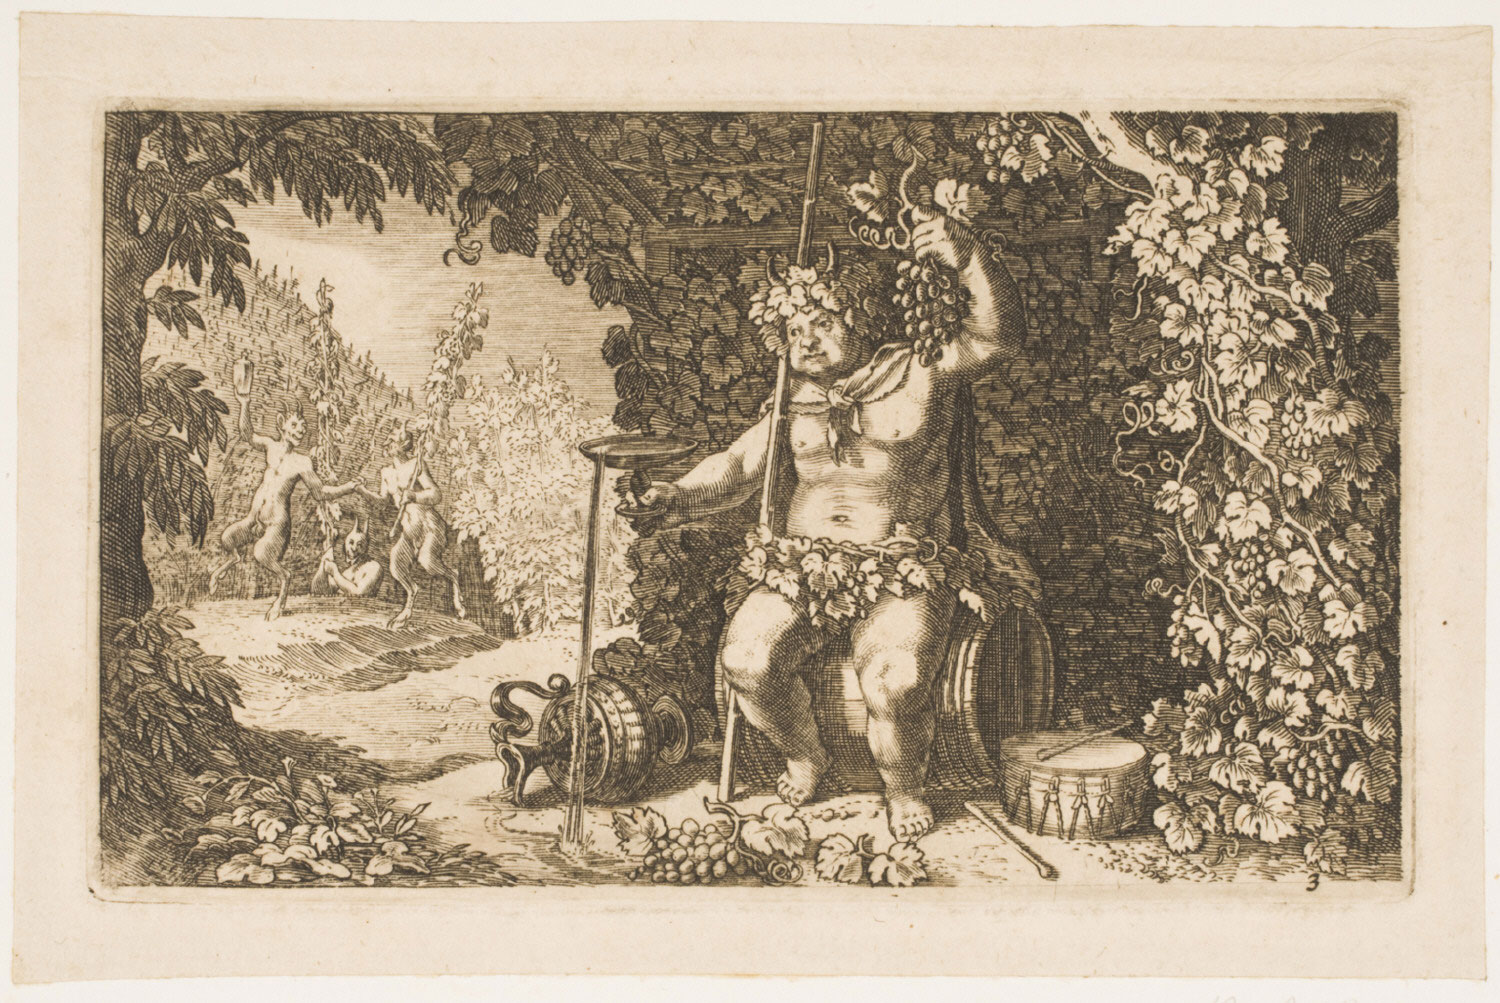 Bacchus as the God of Wine